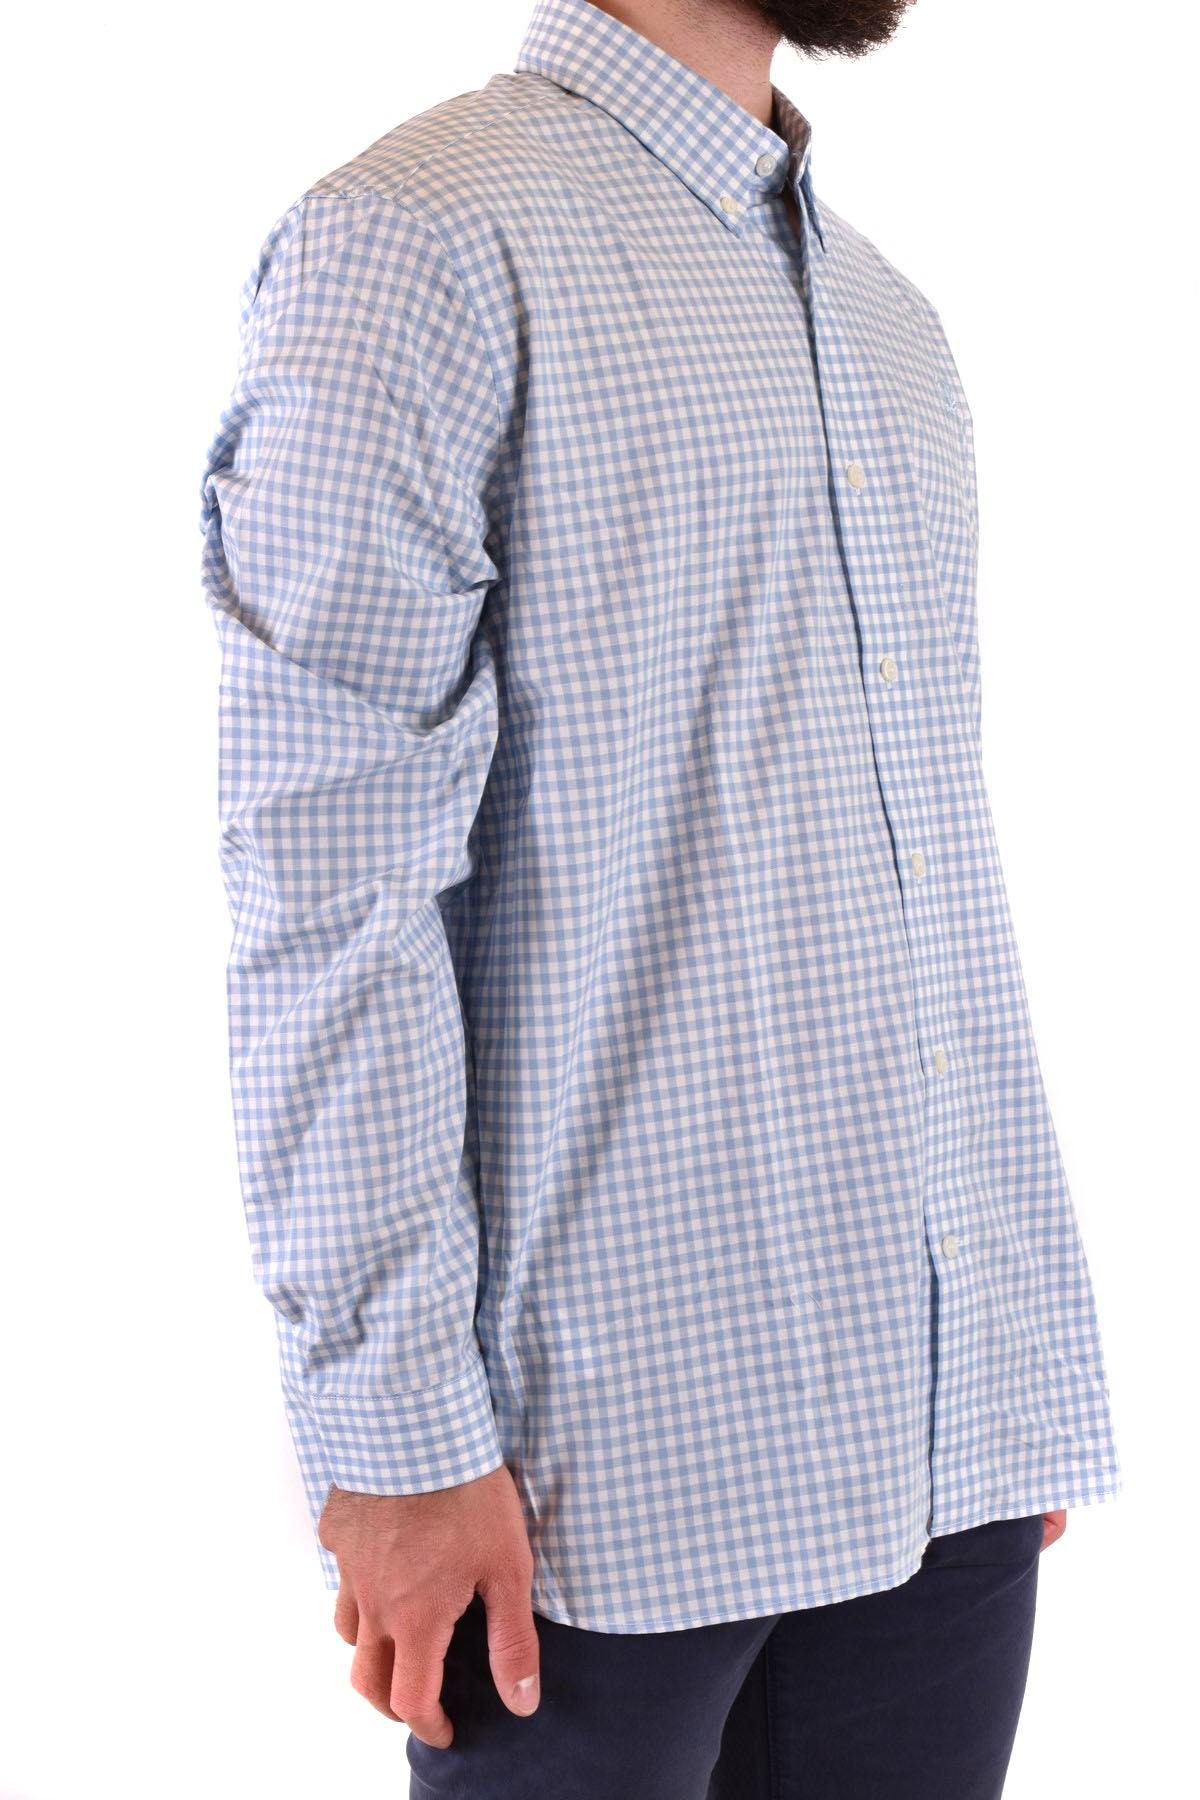 Shirt Fred Perry-Men's Fashion - Men's Clothing - Shirts-Product Details Terms: New With LabelClothing Type: CamiciaMain Color: BlueSeason: Spring / SummerMade In: ChinaGender: ManSize: IntComposition: Cotton 100%Year: 2020Manufacturer Part Number: M5554 144120-Keyomi-Sook